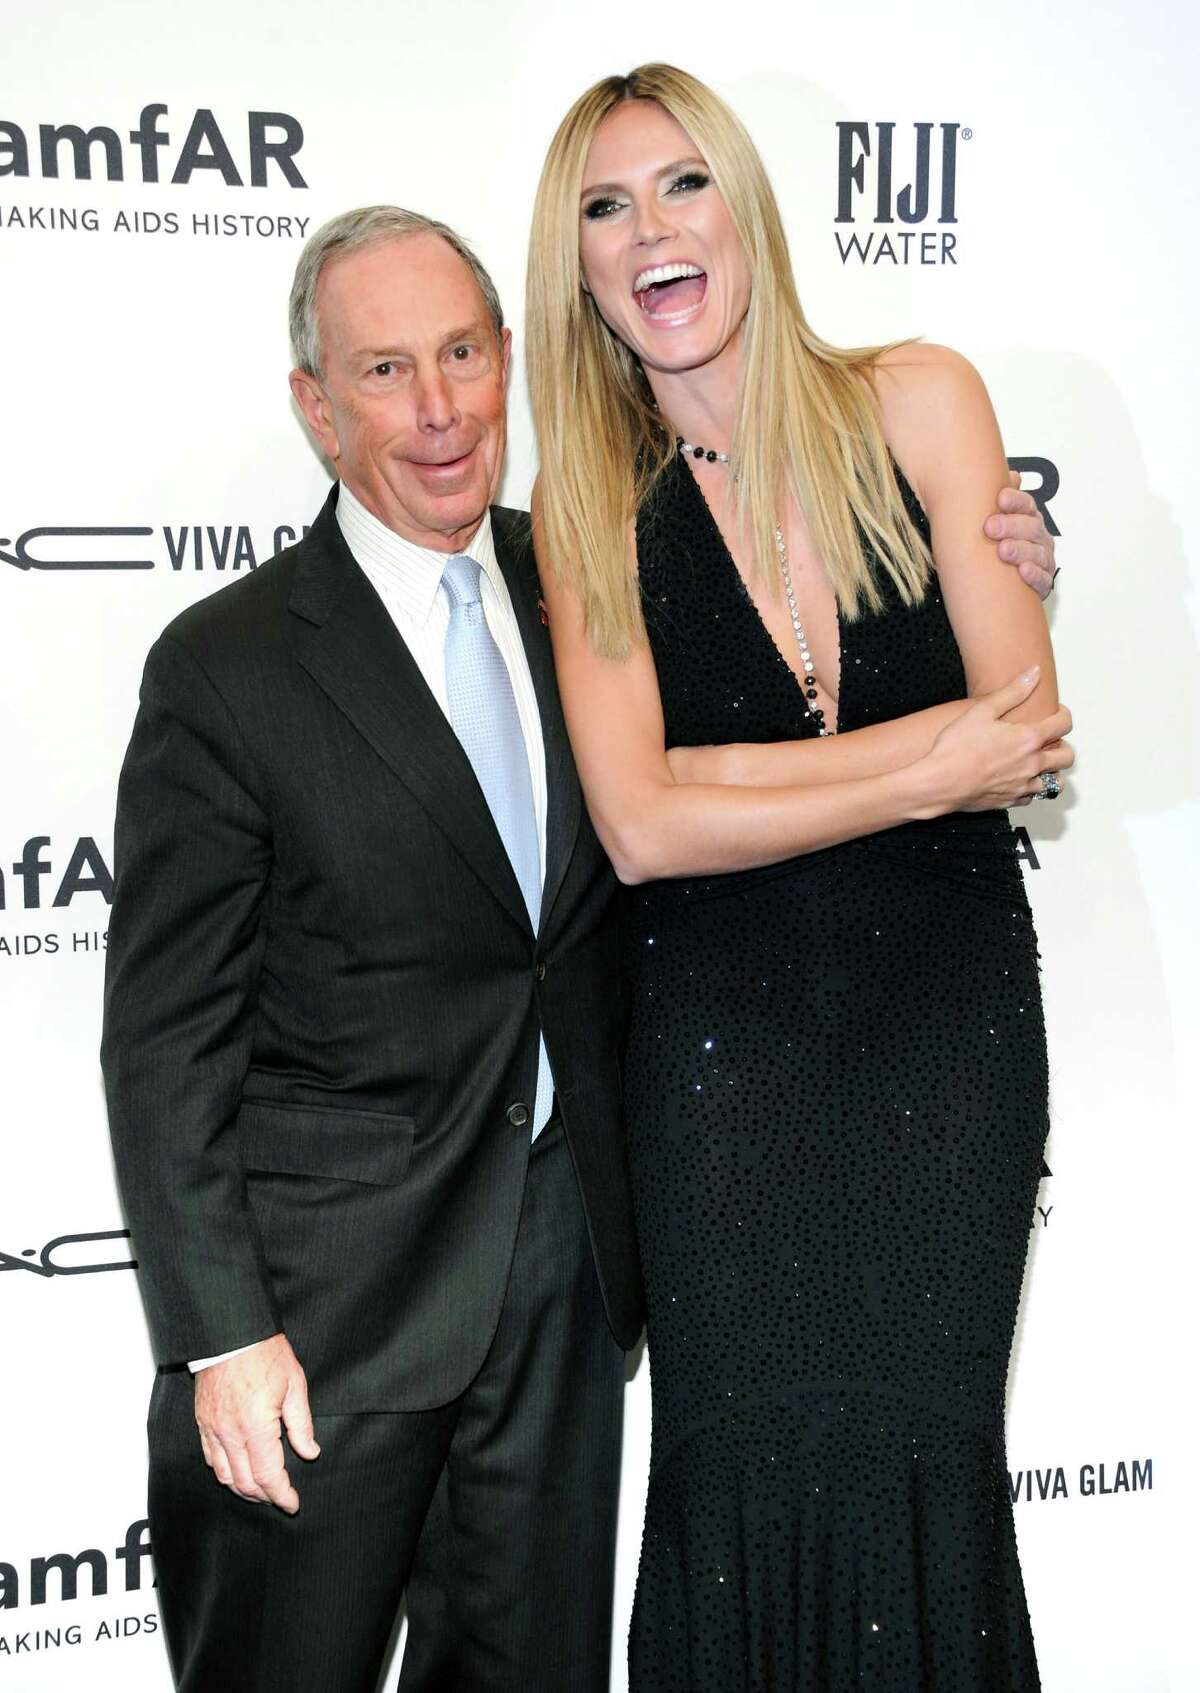 New York Mayor Michael Bloomberg and honoree Heidi Klum attend amfAR's New York gala at Cipriani Wall Street on Wednesday, Feb. 6, 2013 in New York.